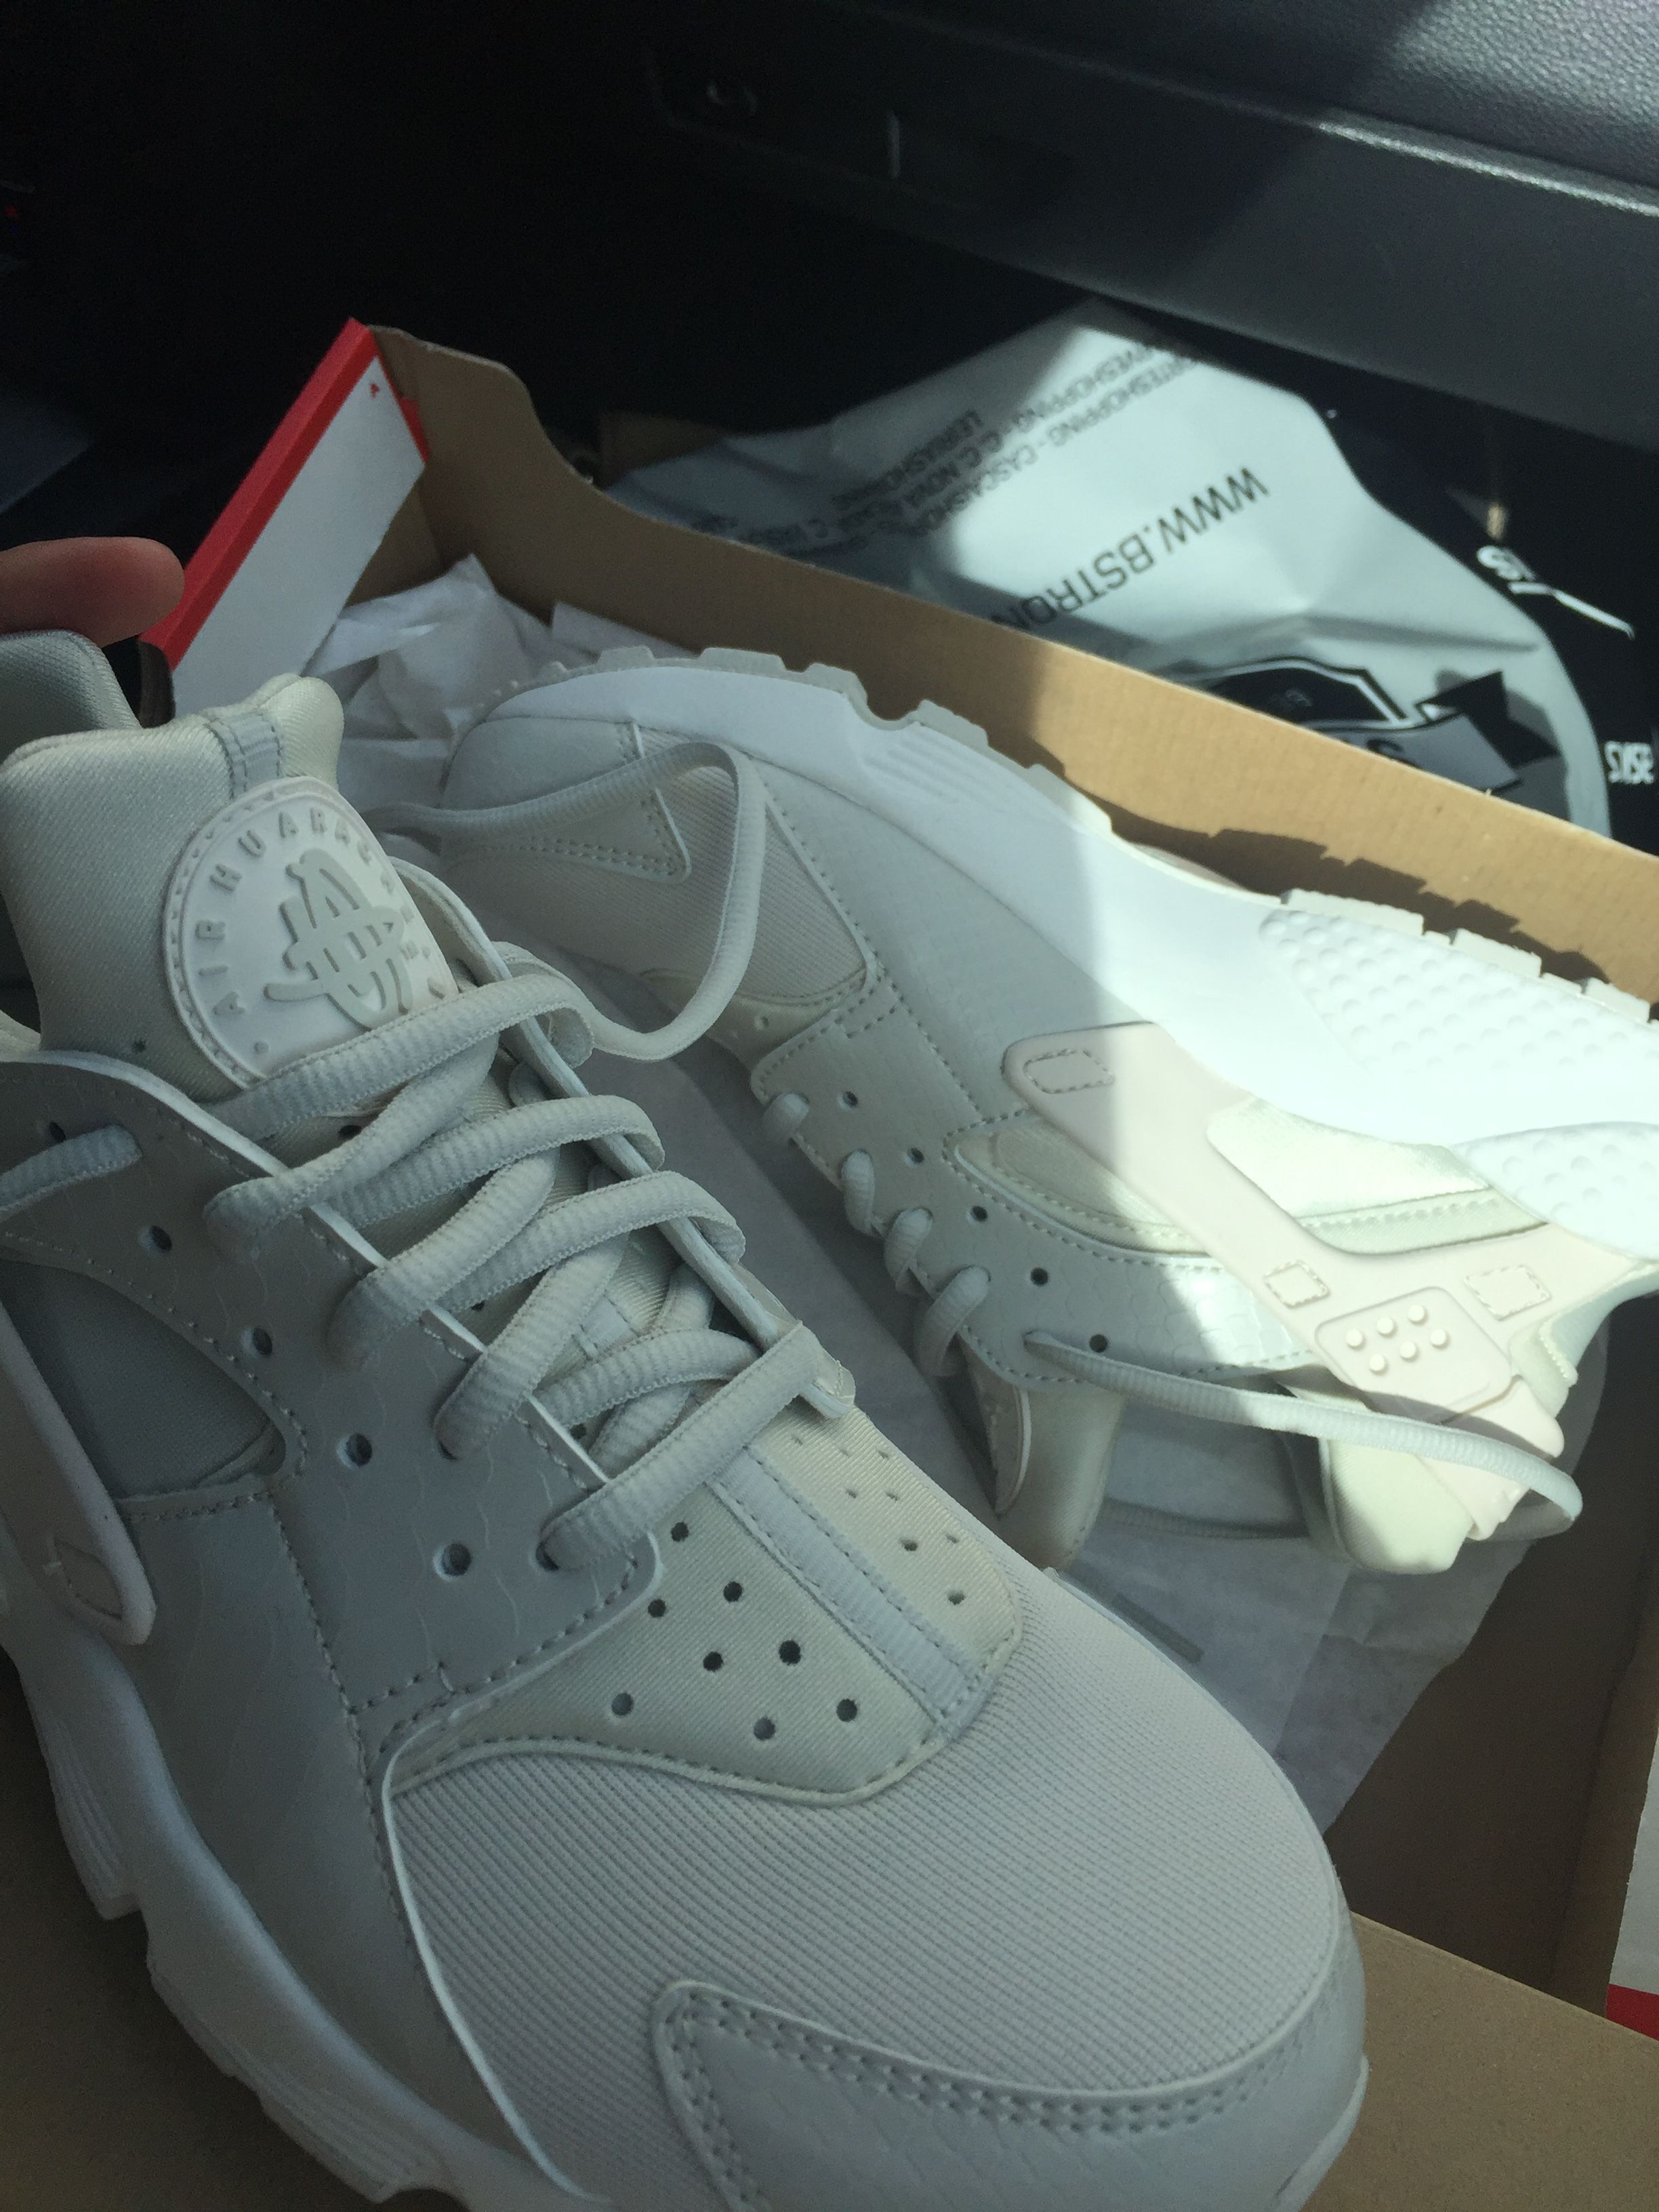 Pin by izzy on Chaussure | Nike huarache, Shoes, Sneakers